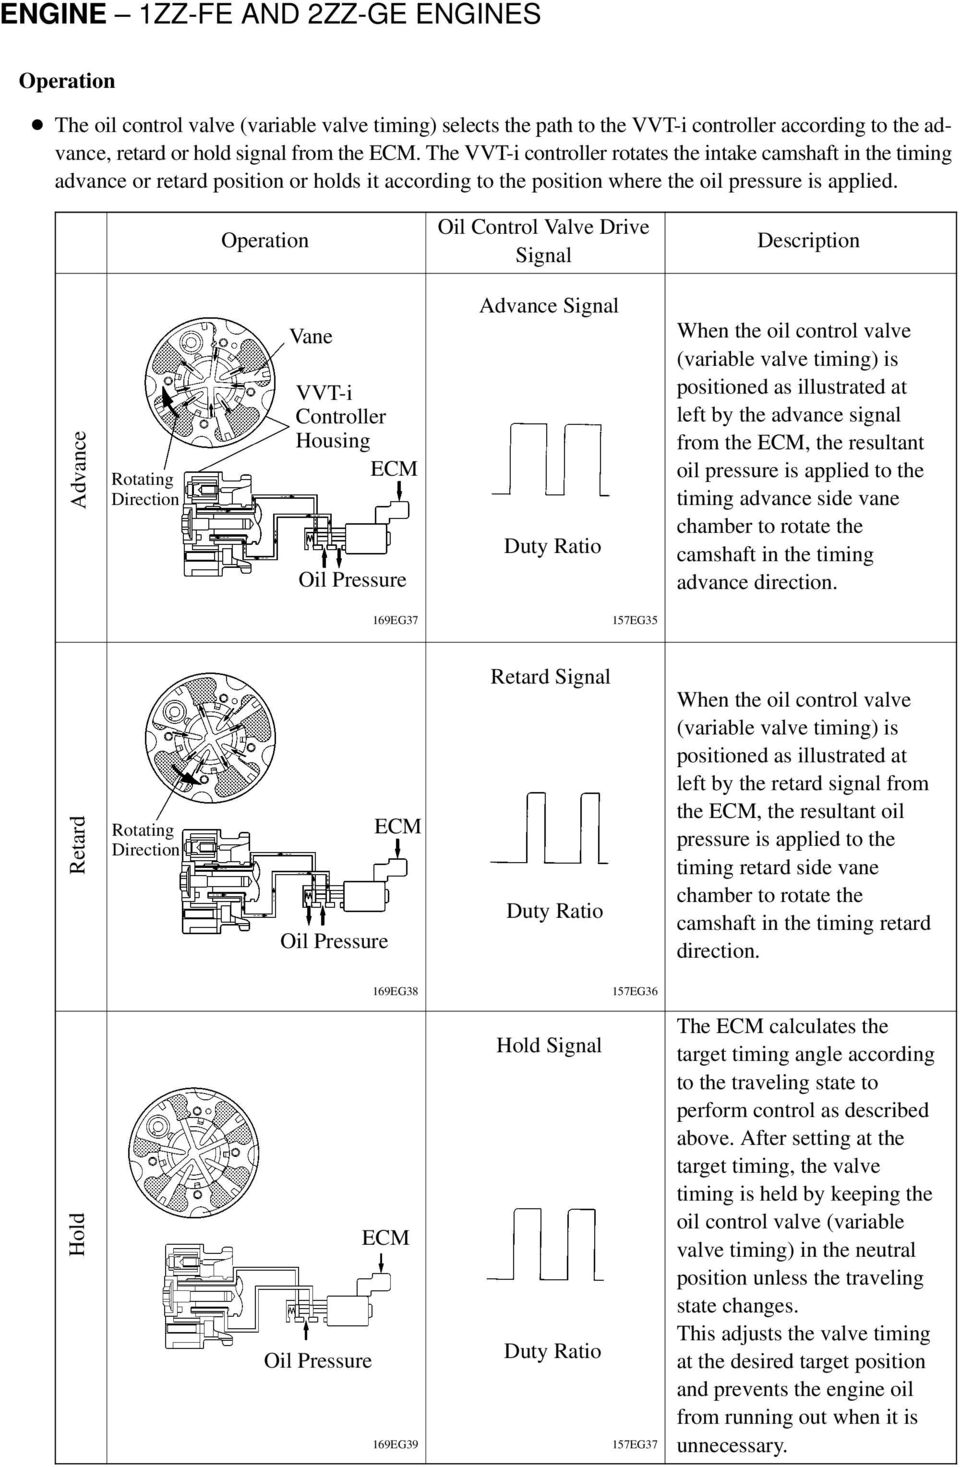 Engine 1zz Fe And 2zz Ge Engines Pdf 1997 Rav4 A C Compressor Wiring Diagram Operation Oil Control Valve Drive Signal Description Advance Rotating Direction Vane Vvt I Controller Housing